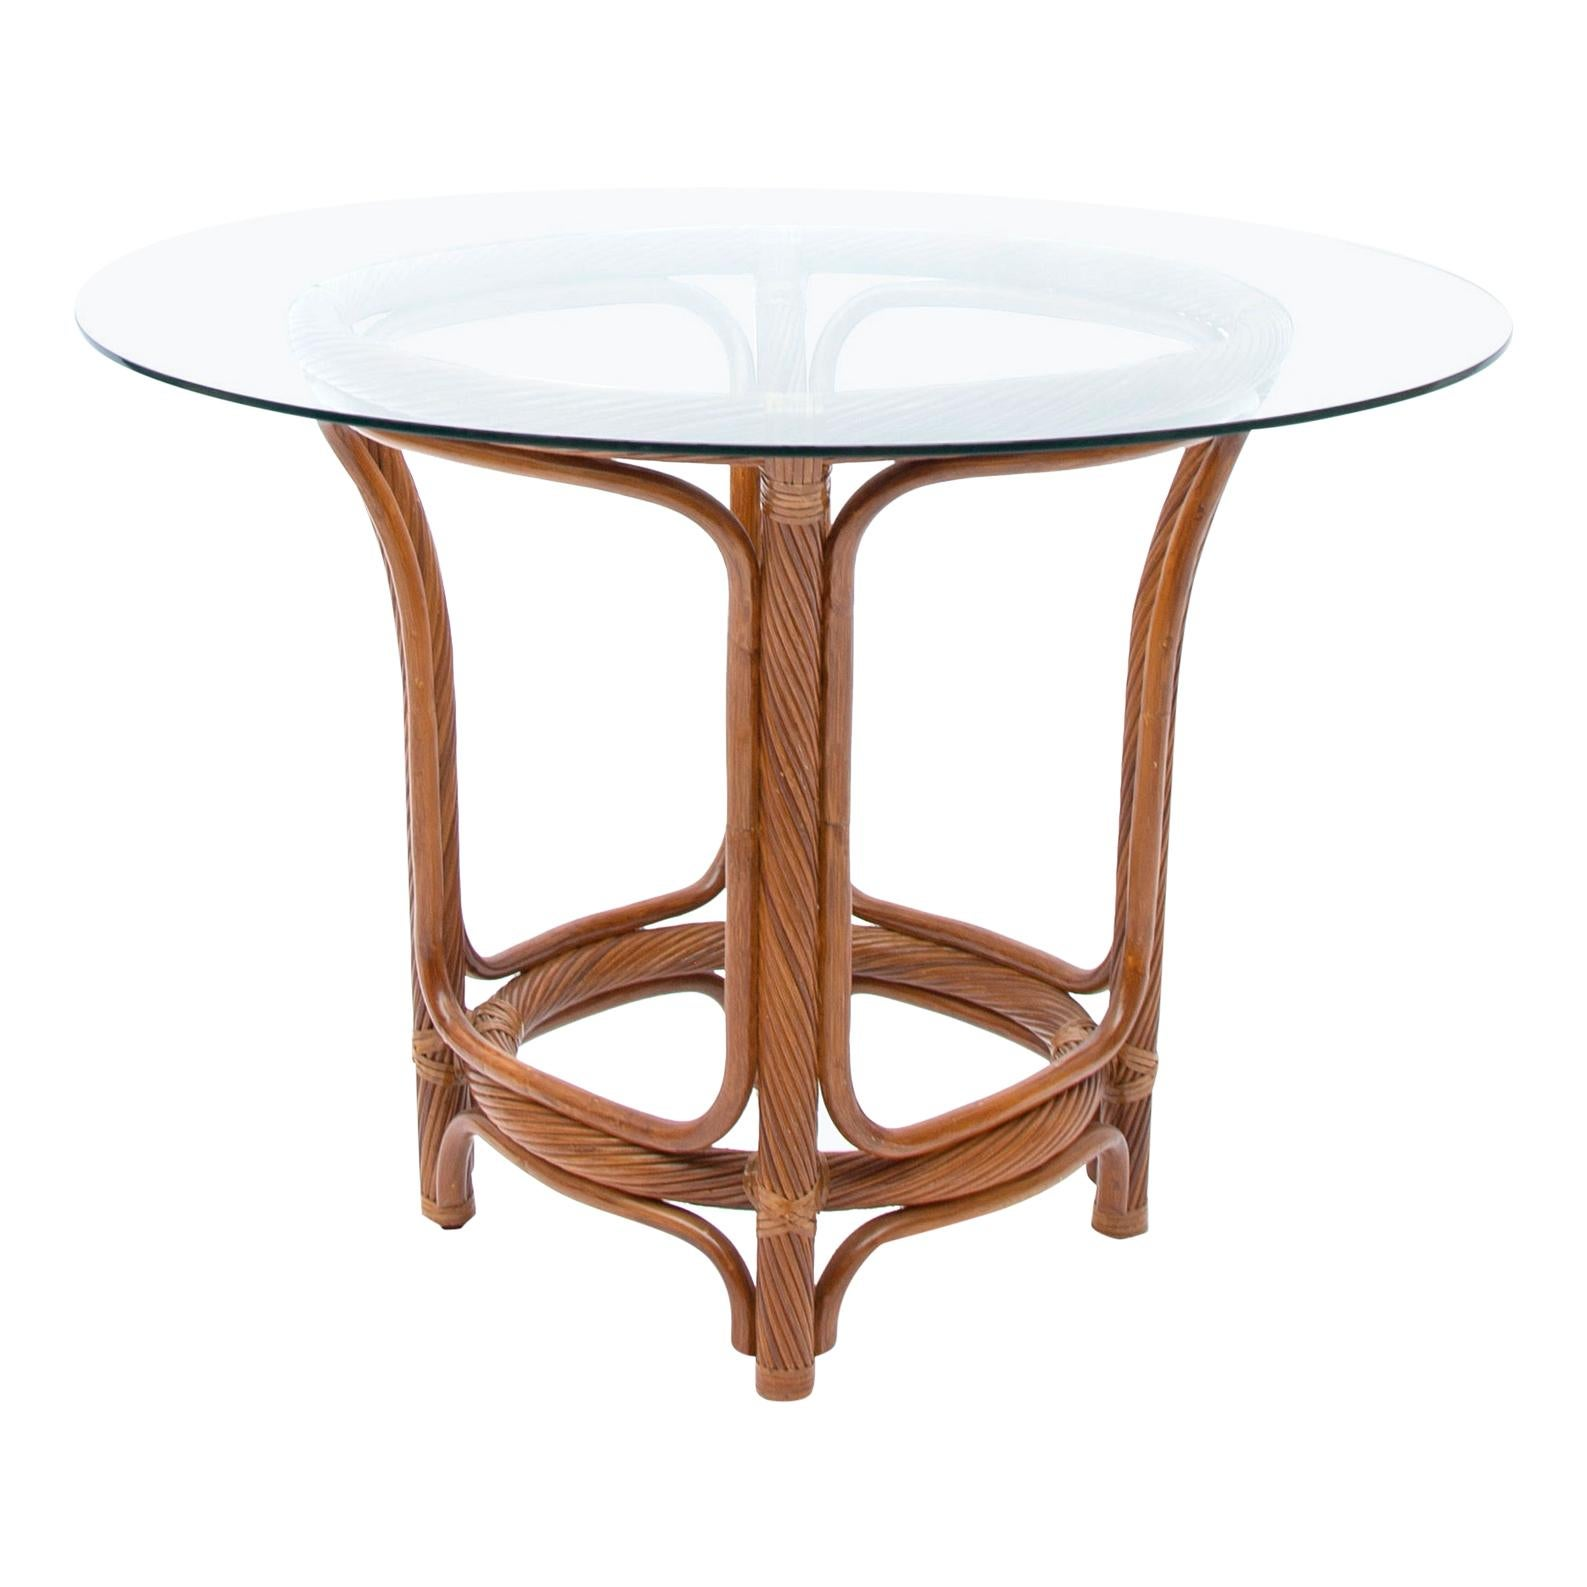 Twisted Rattan McGuire Hollywood Regency Dining Table, 1970s